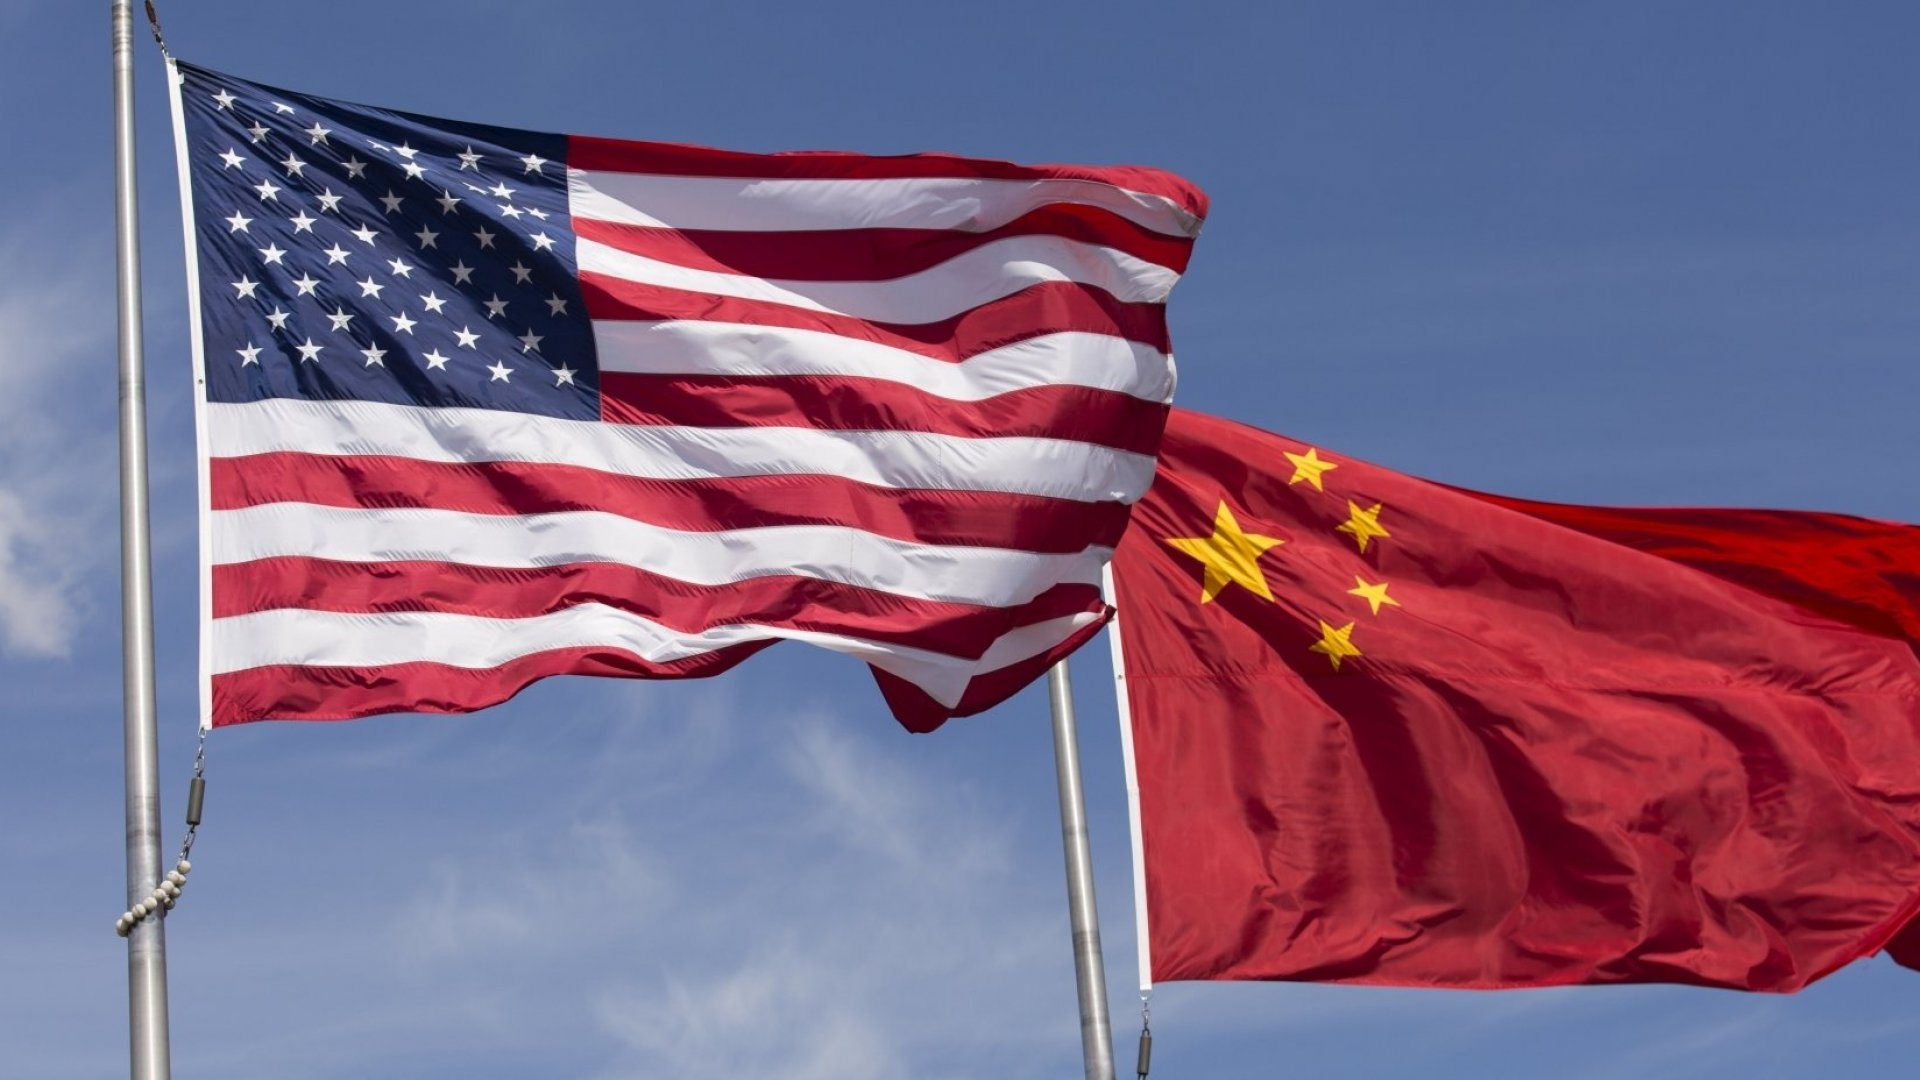 Worried About the Trade War With China? Do These 4 Things to Protect Your Business